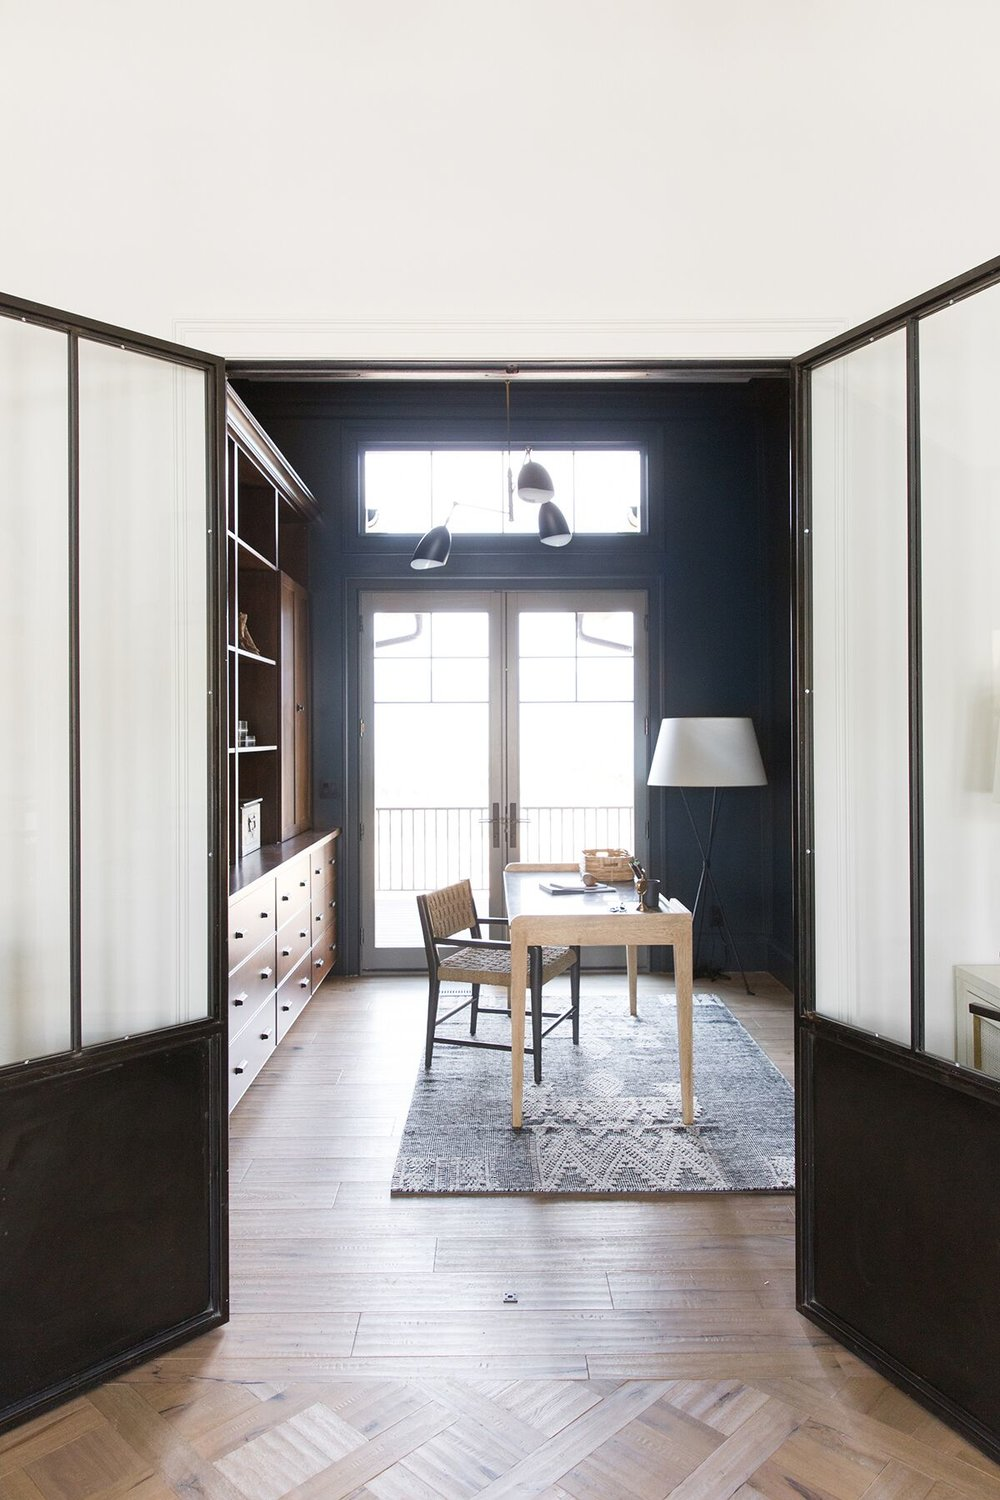 Moody mountain office with dark paneled walls, built-in, abstract artwork - Studio McGee Design